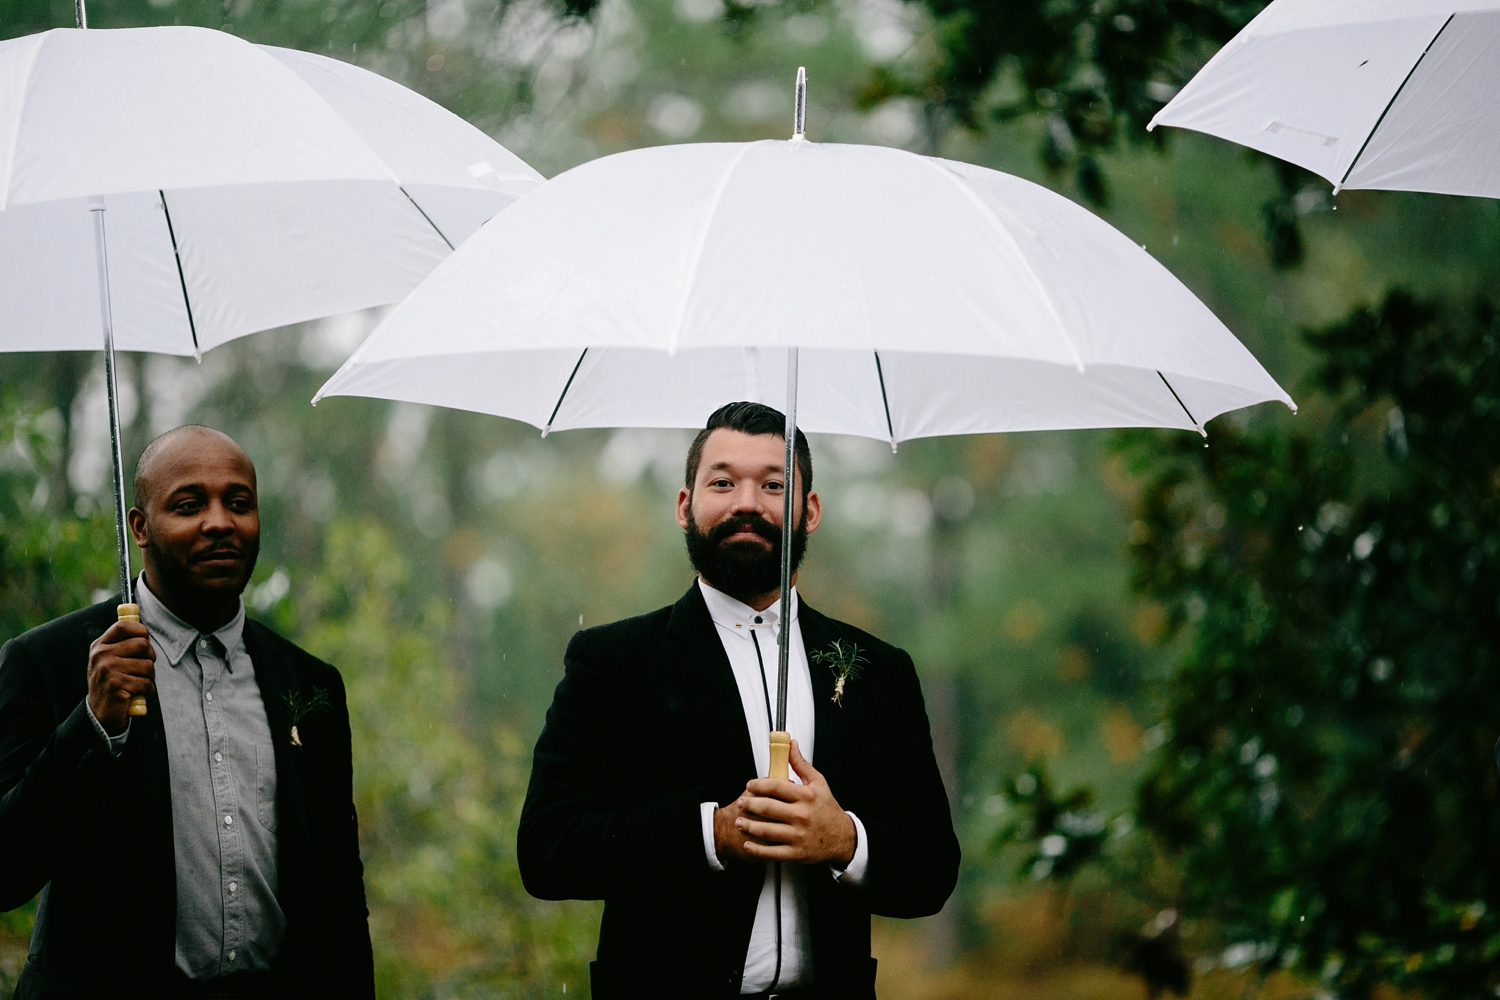 rainy-wedding-pictures-068